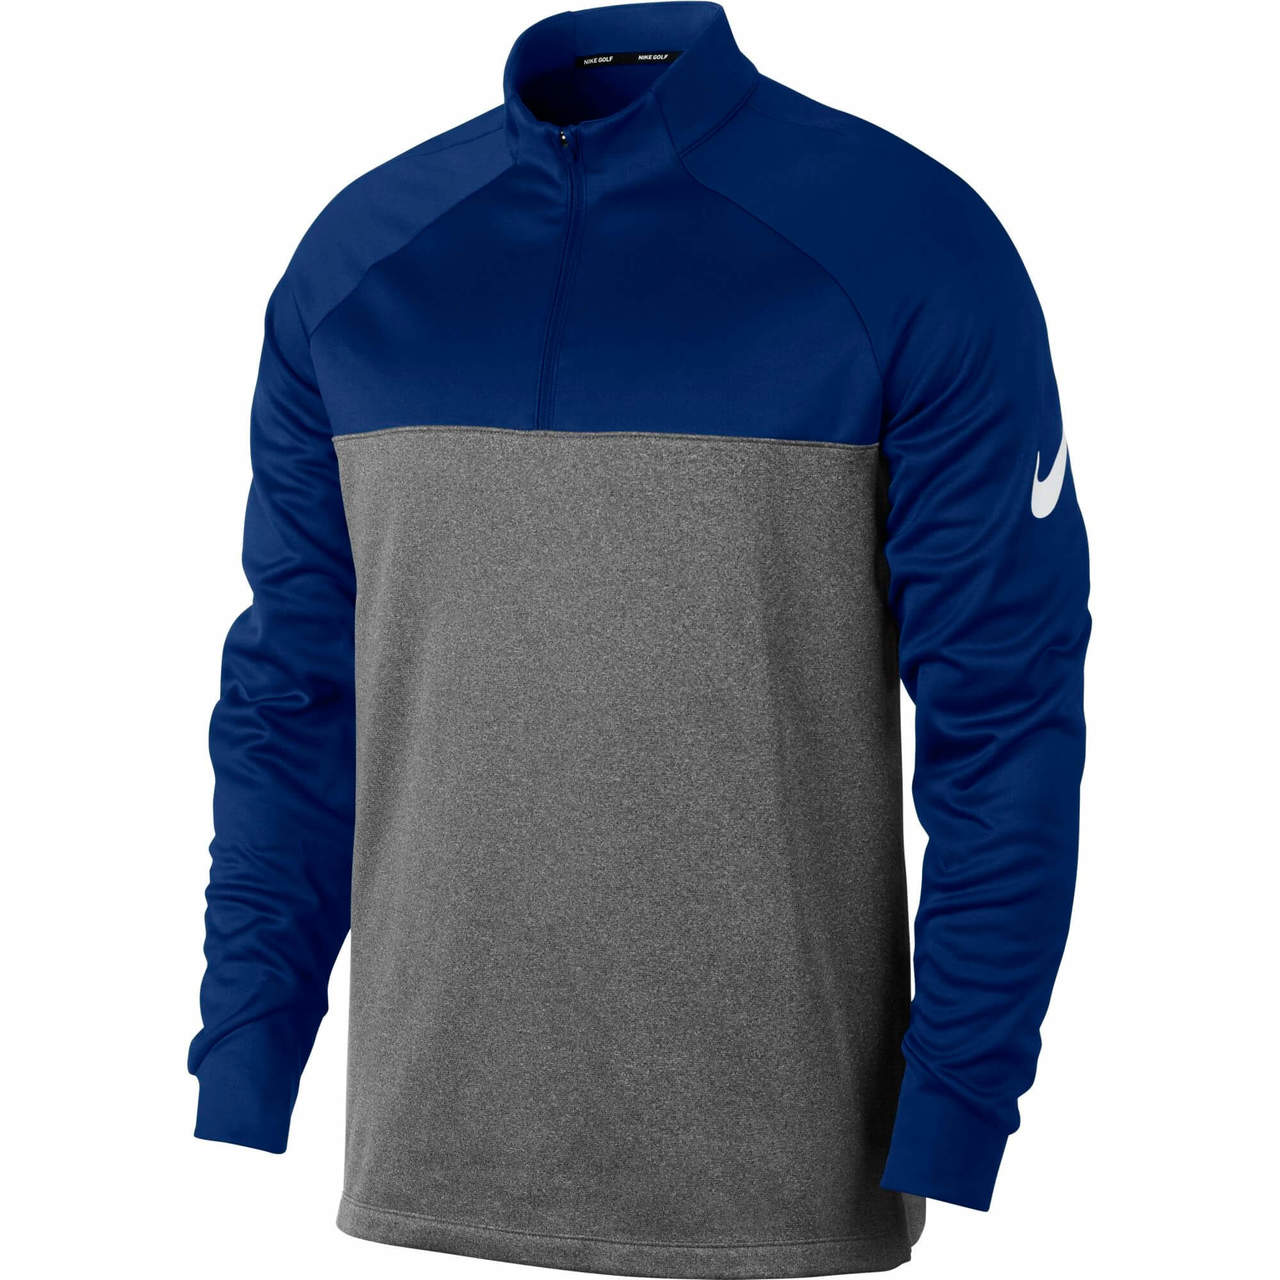 b20f5eab2a8733 Shop Nike Therma Core Half-Zip Men s Golf Top